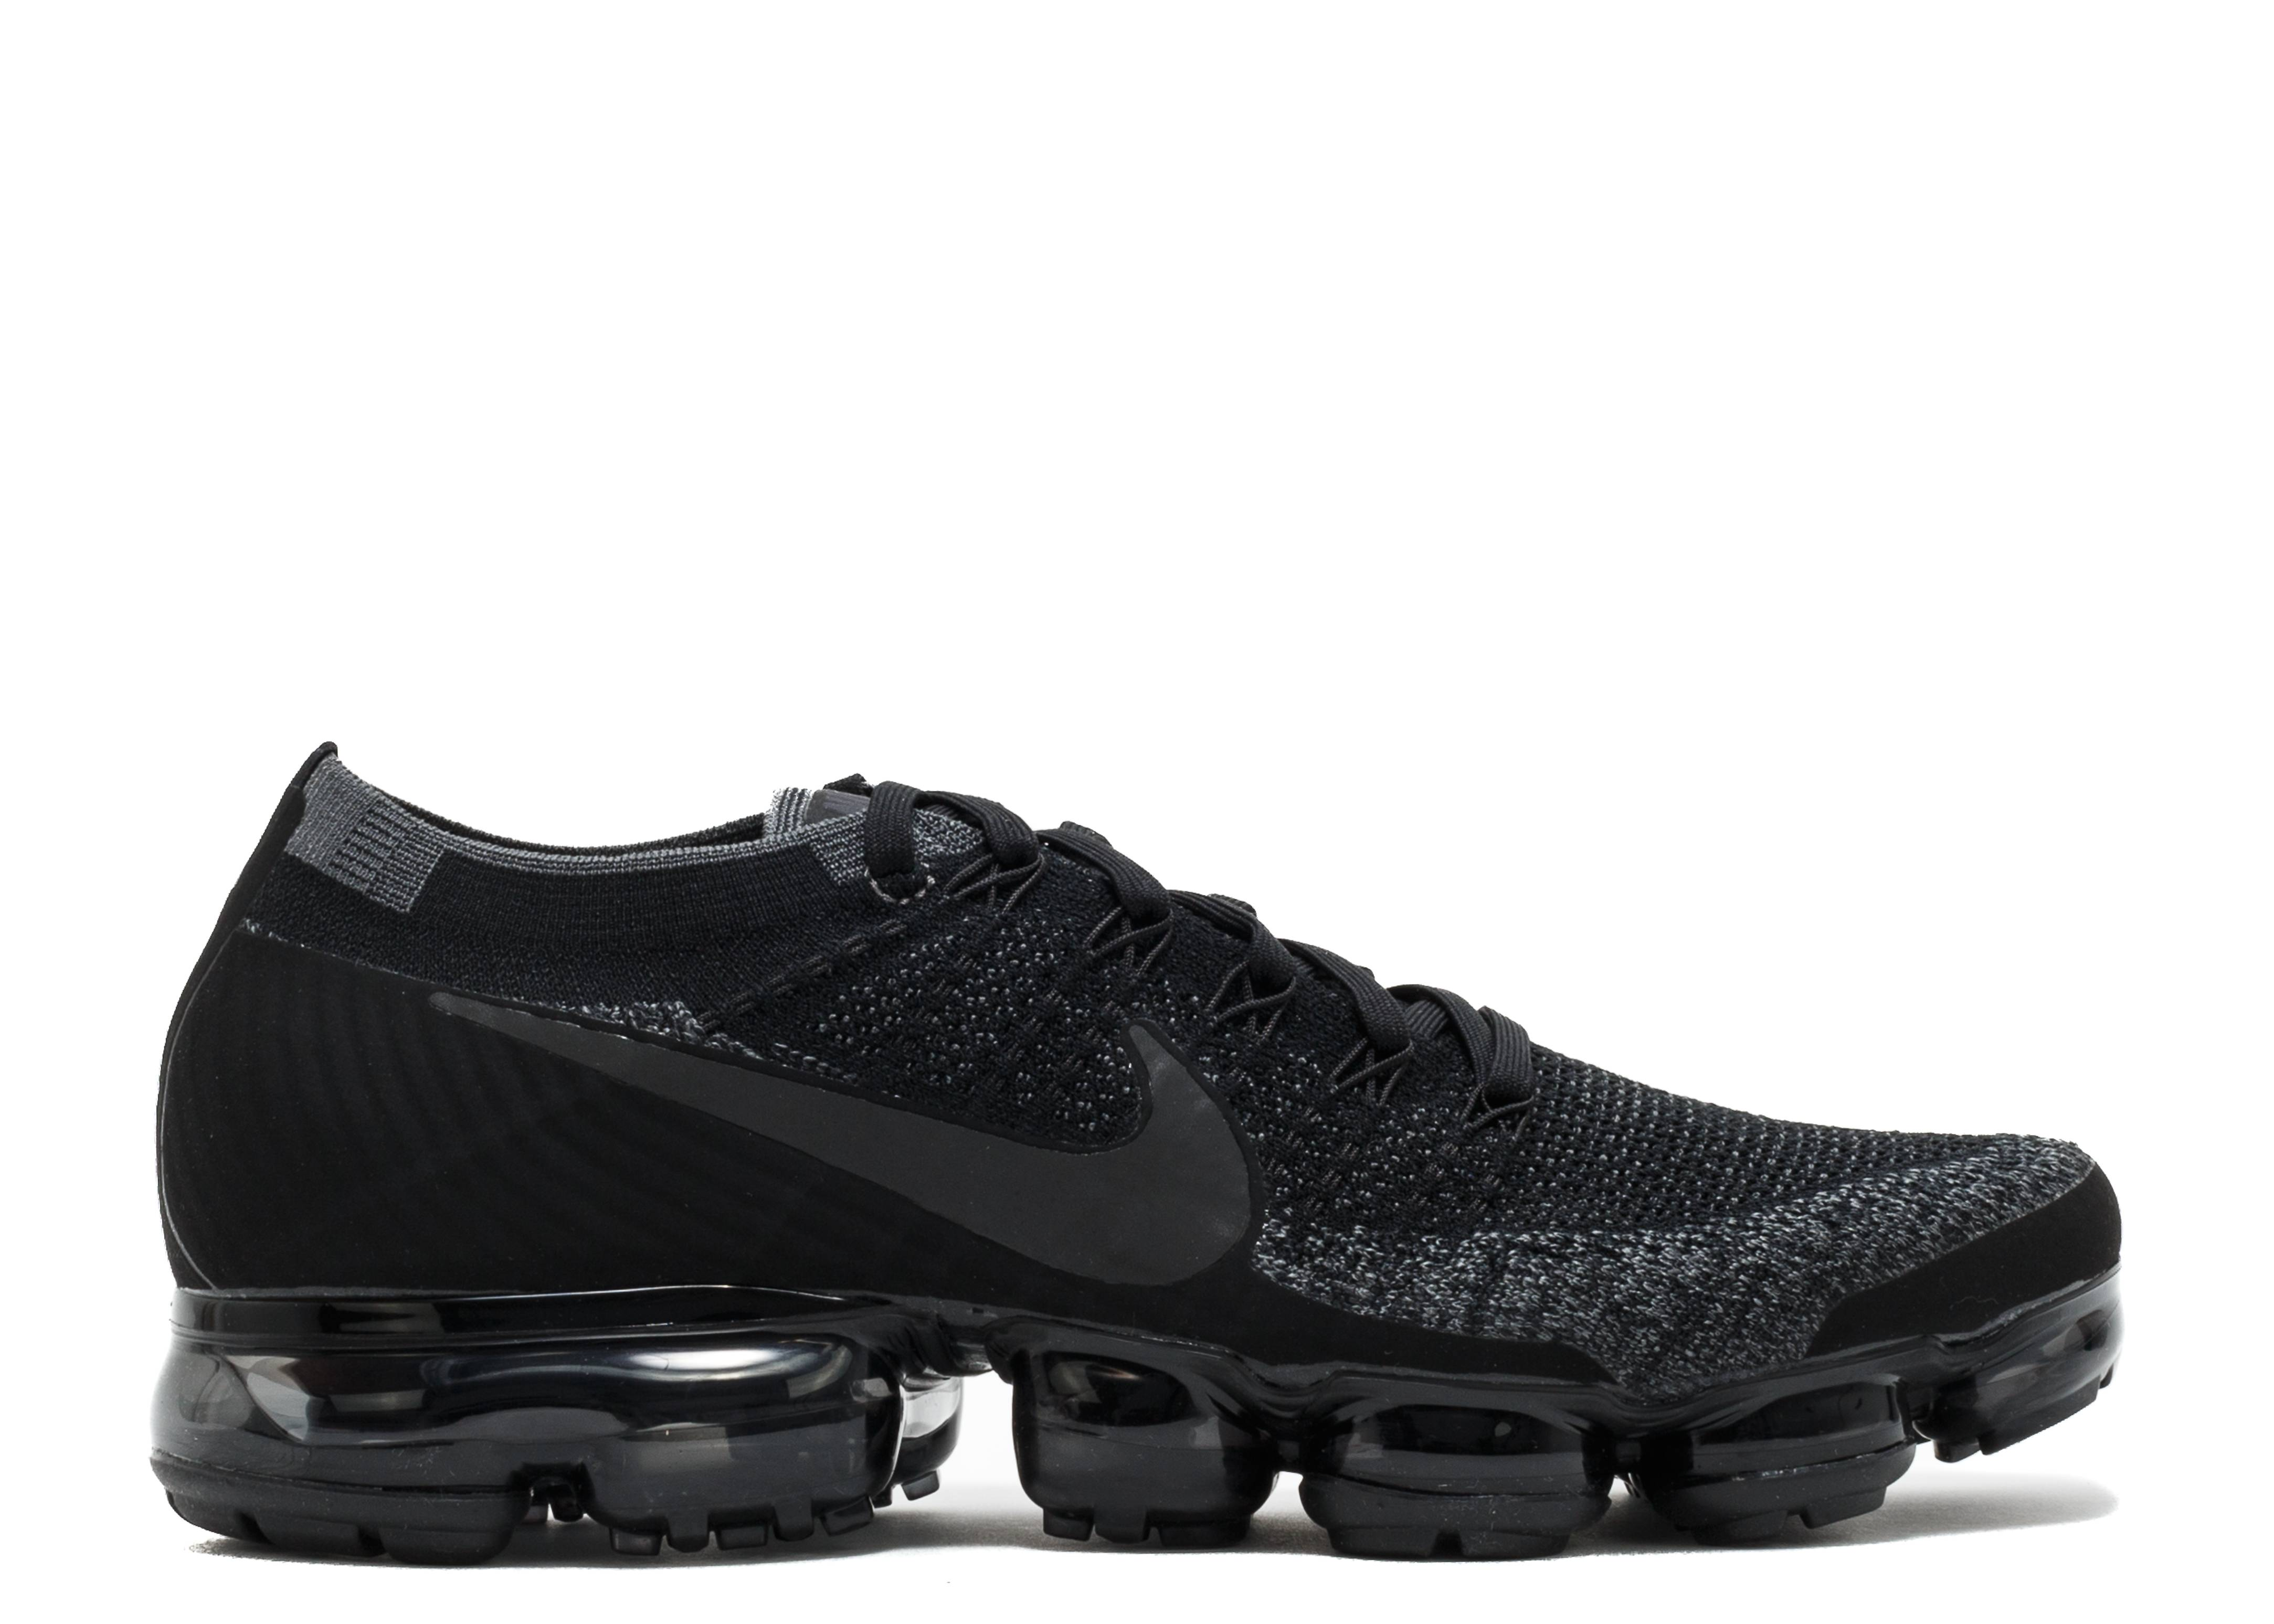 Women's Cheap Nike Air VaporMax 'Black/Anthracite' Launching 29th June